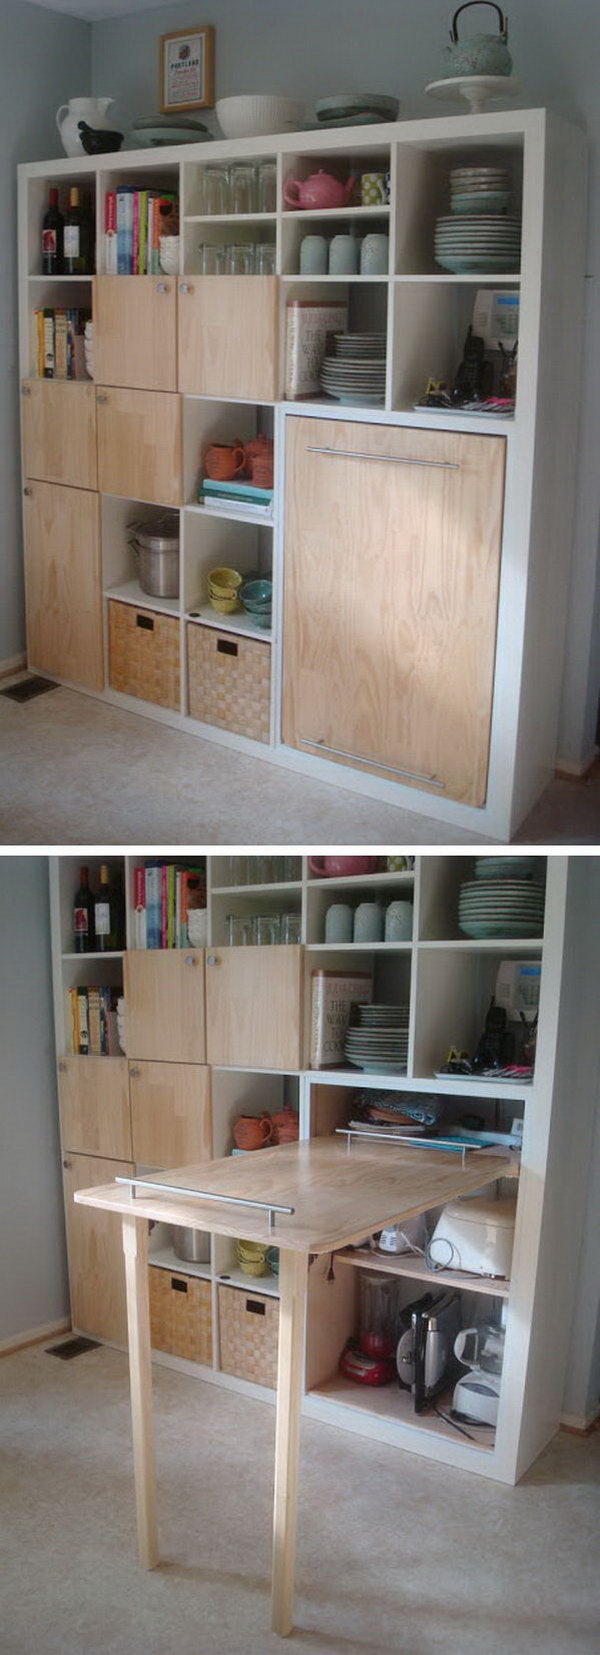 Clever kitchen storage ideas hative - Clever storage for small spaces pict ...